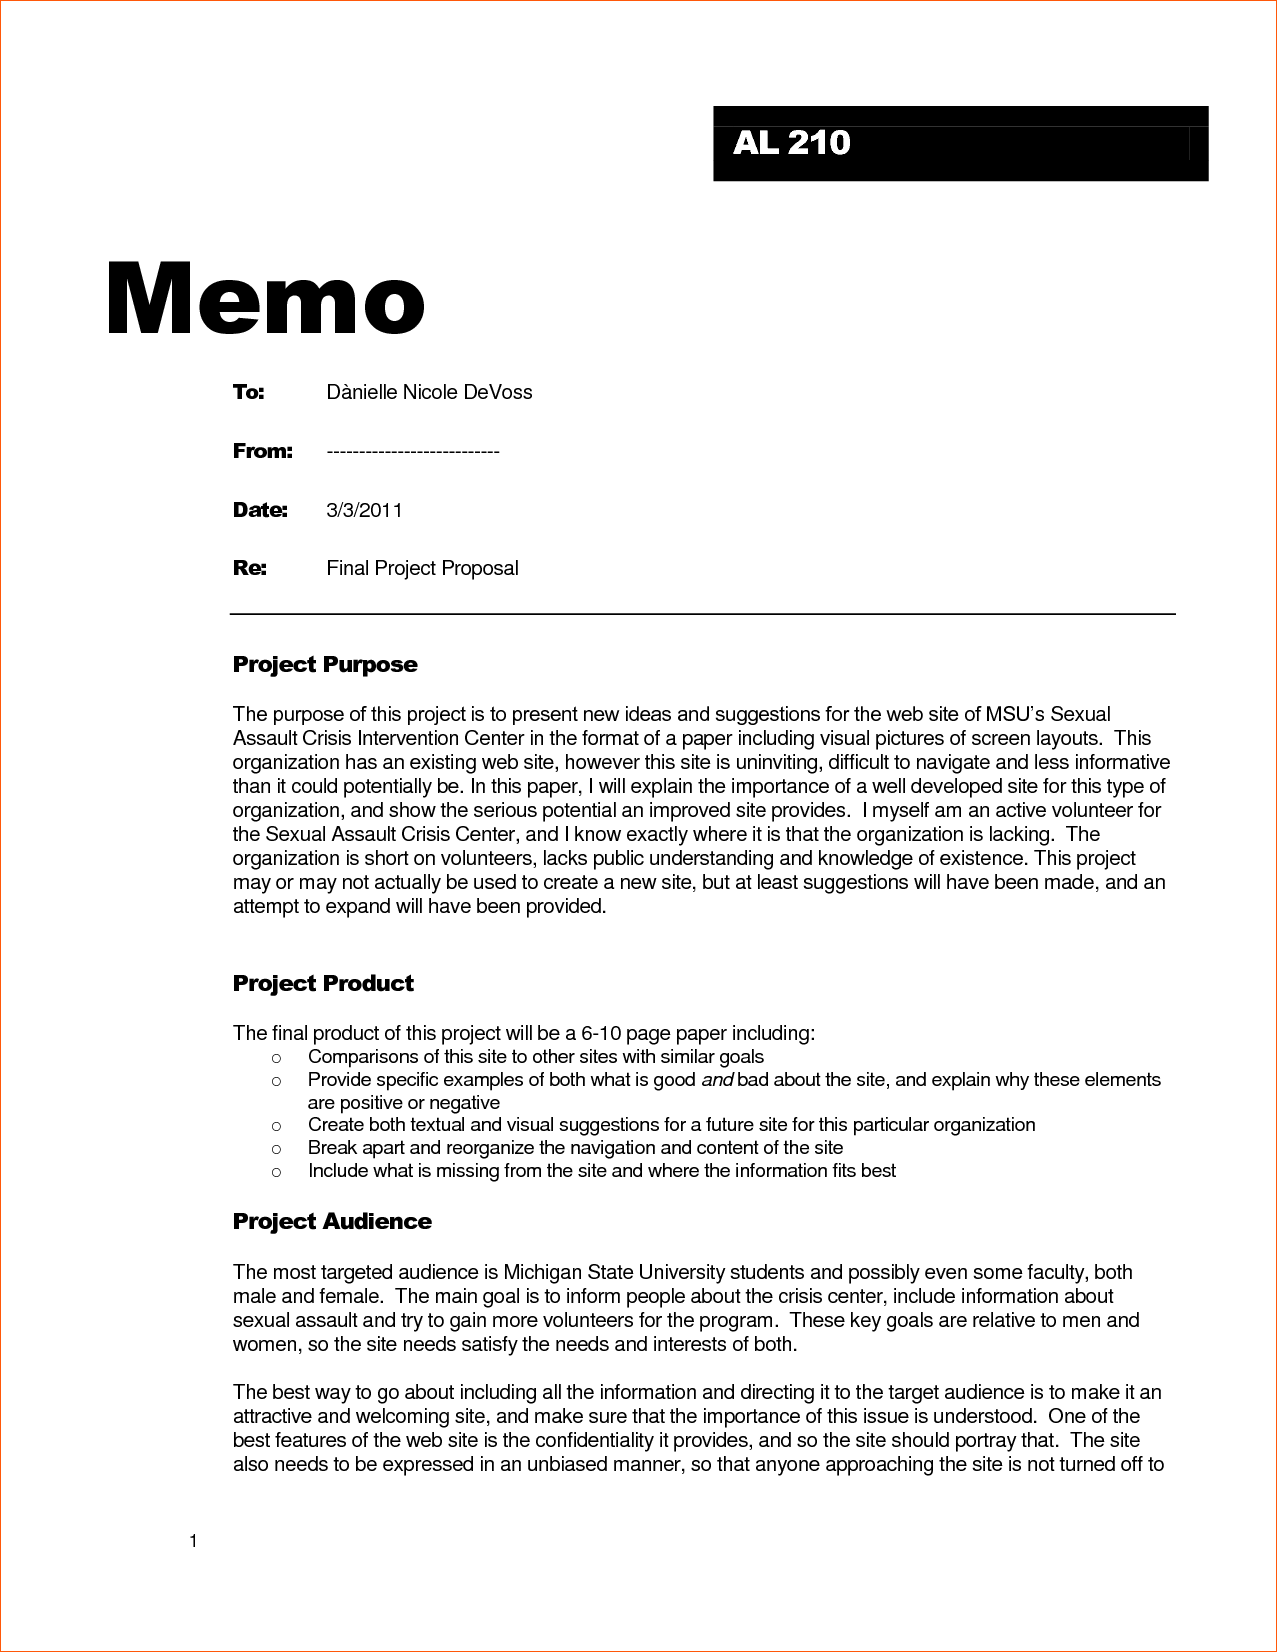 Template Introduction Letter Letterhead Medical Memo Business